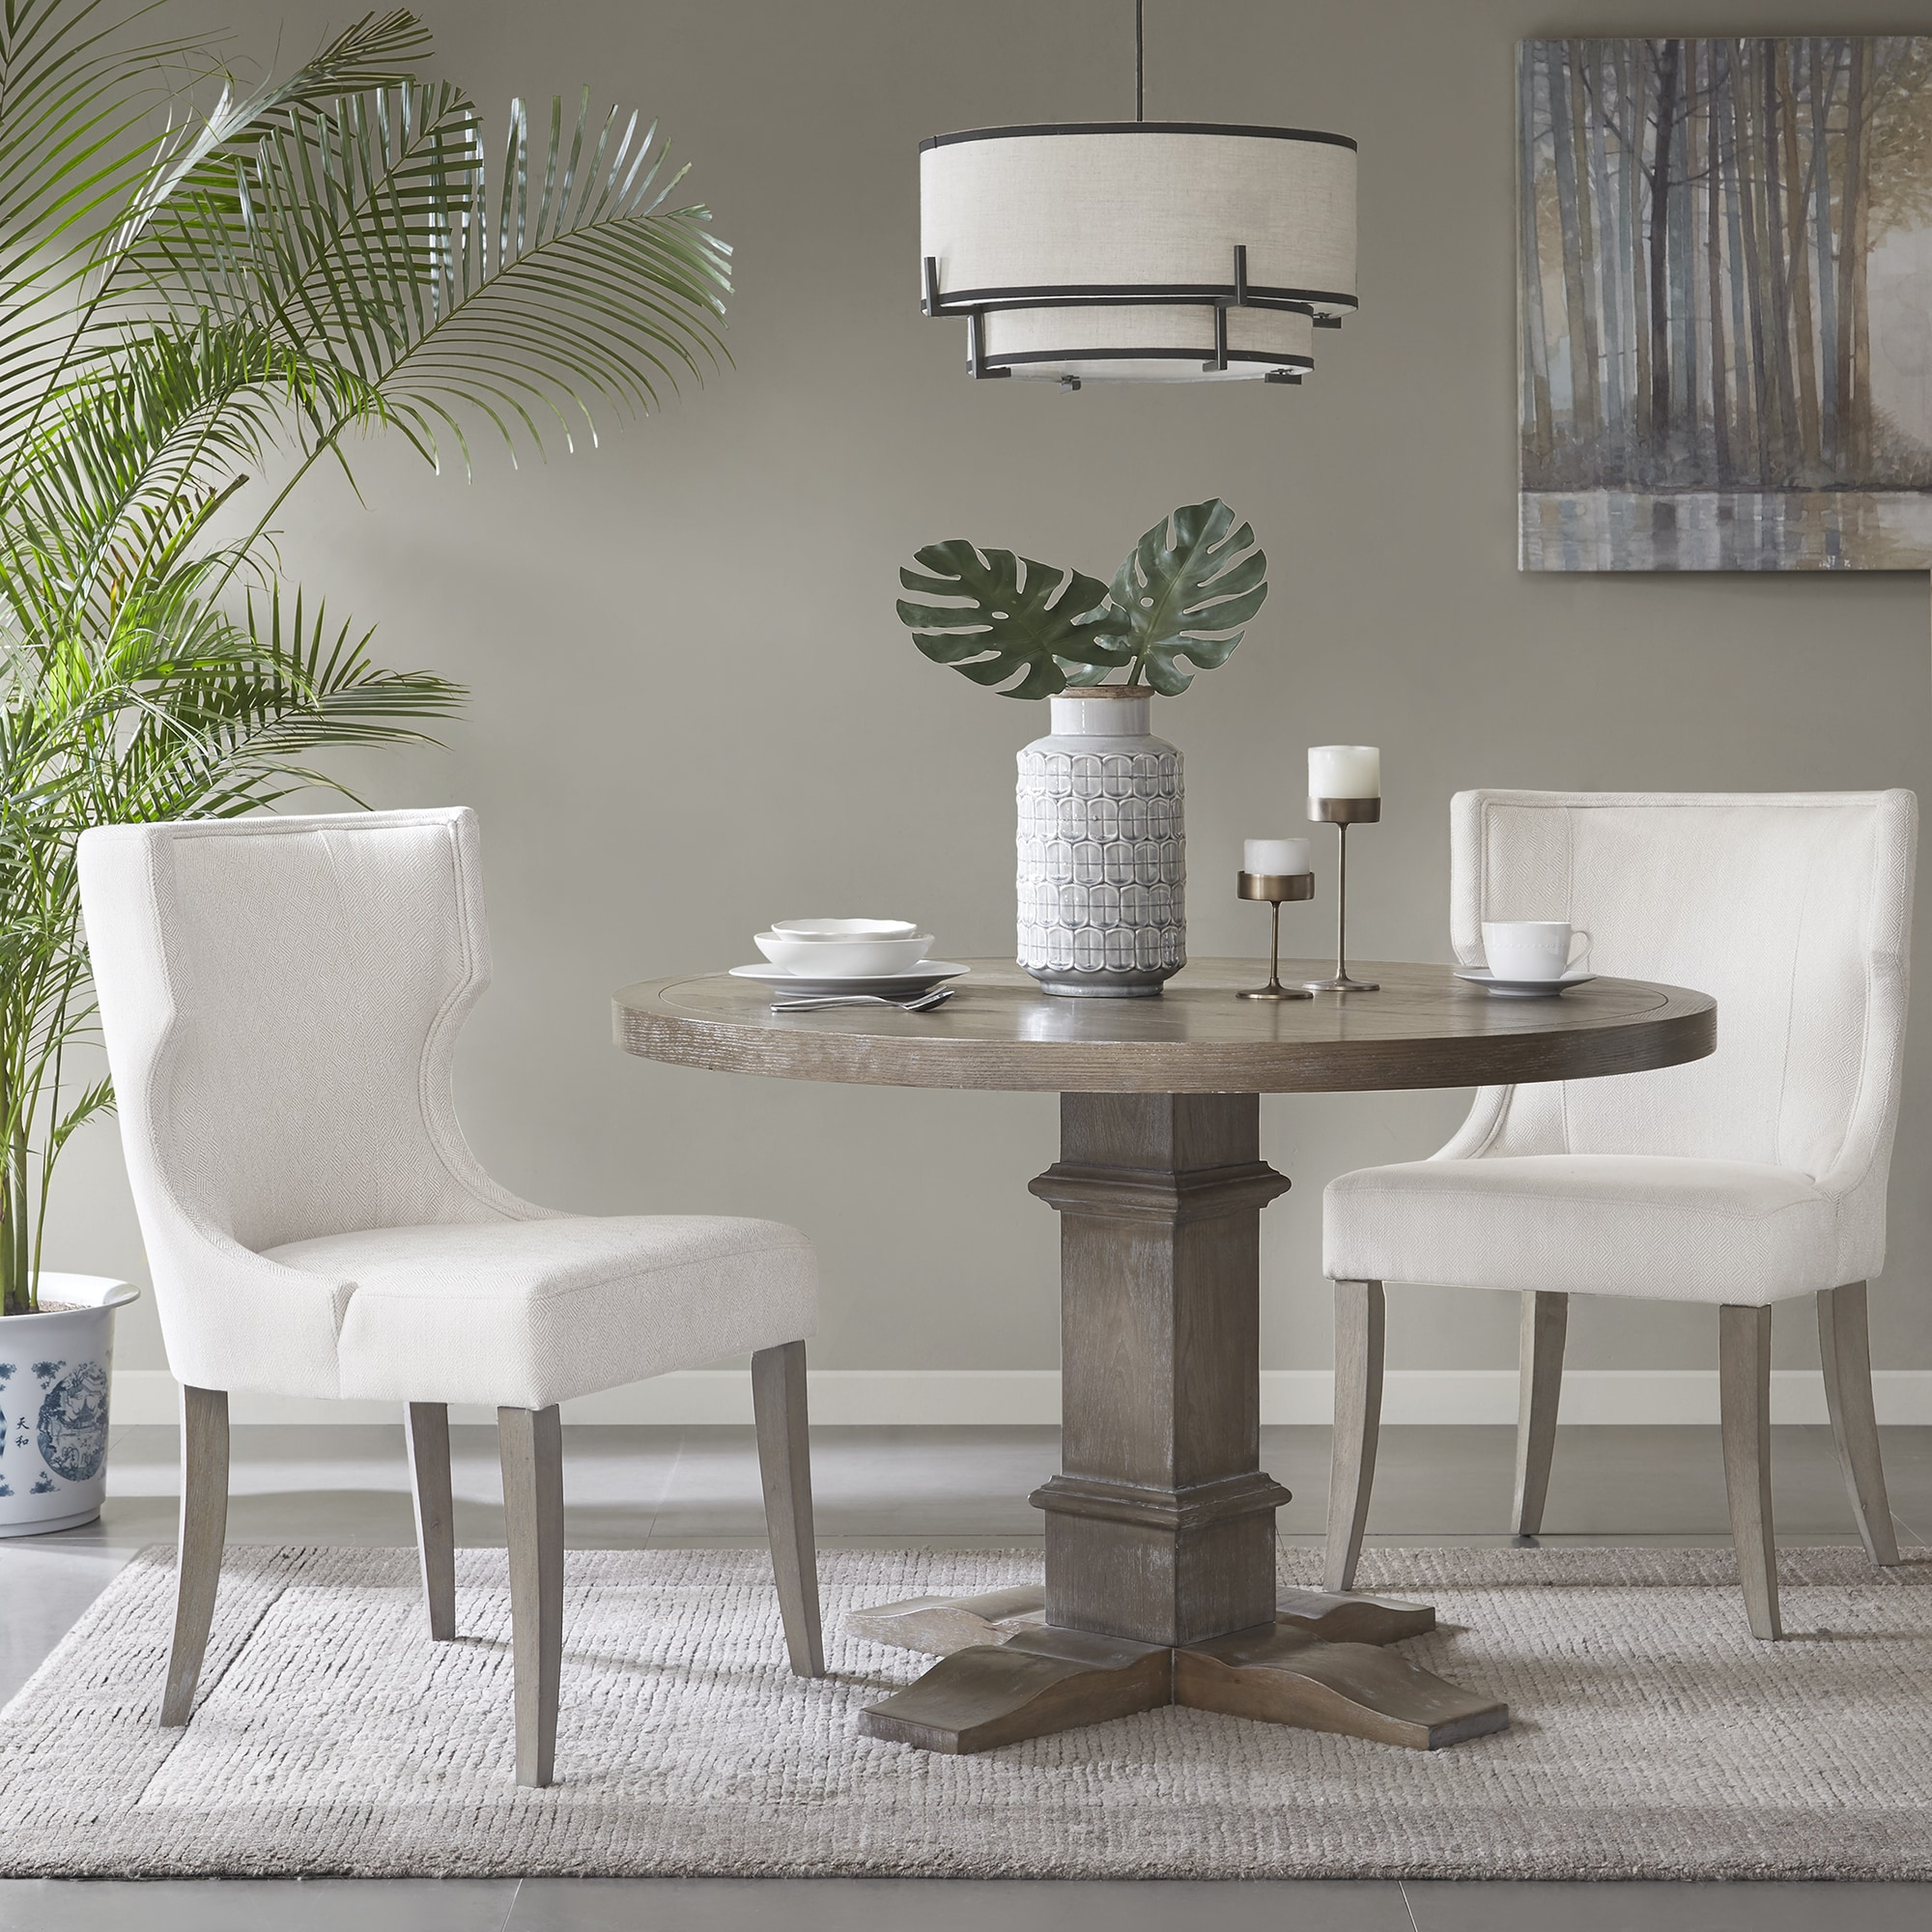 cream upholstered dining chairs chair living room shop madison park fillmore 23 25 w x 26 5 d 37 h